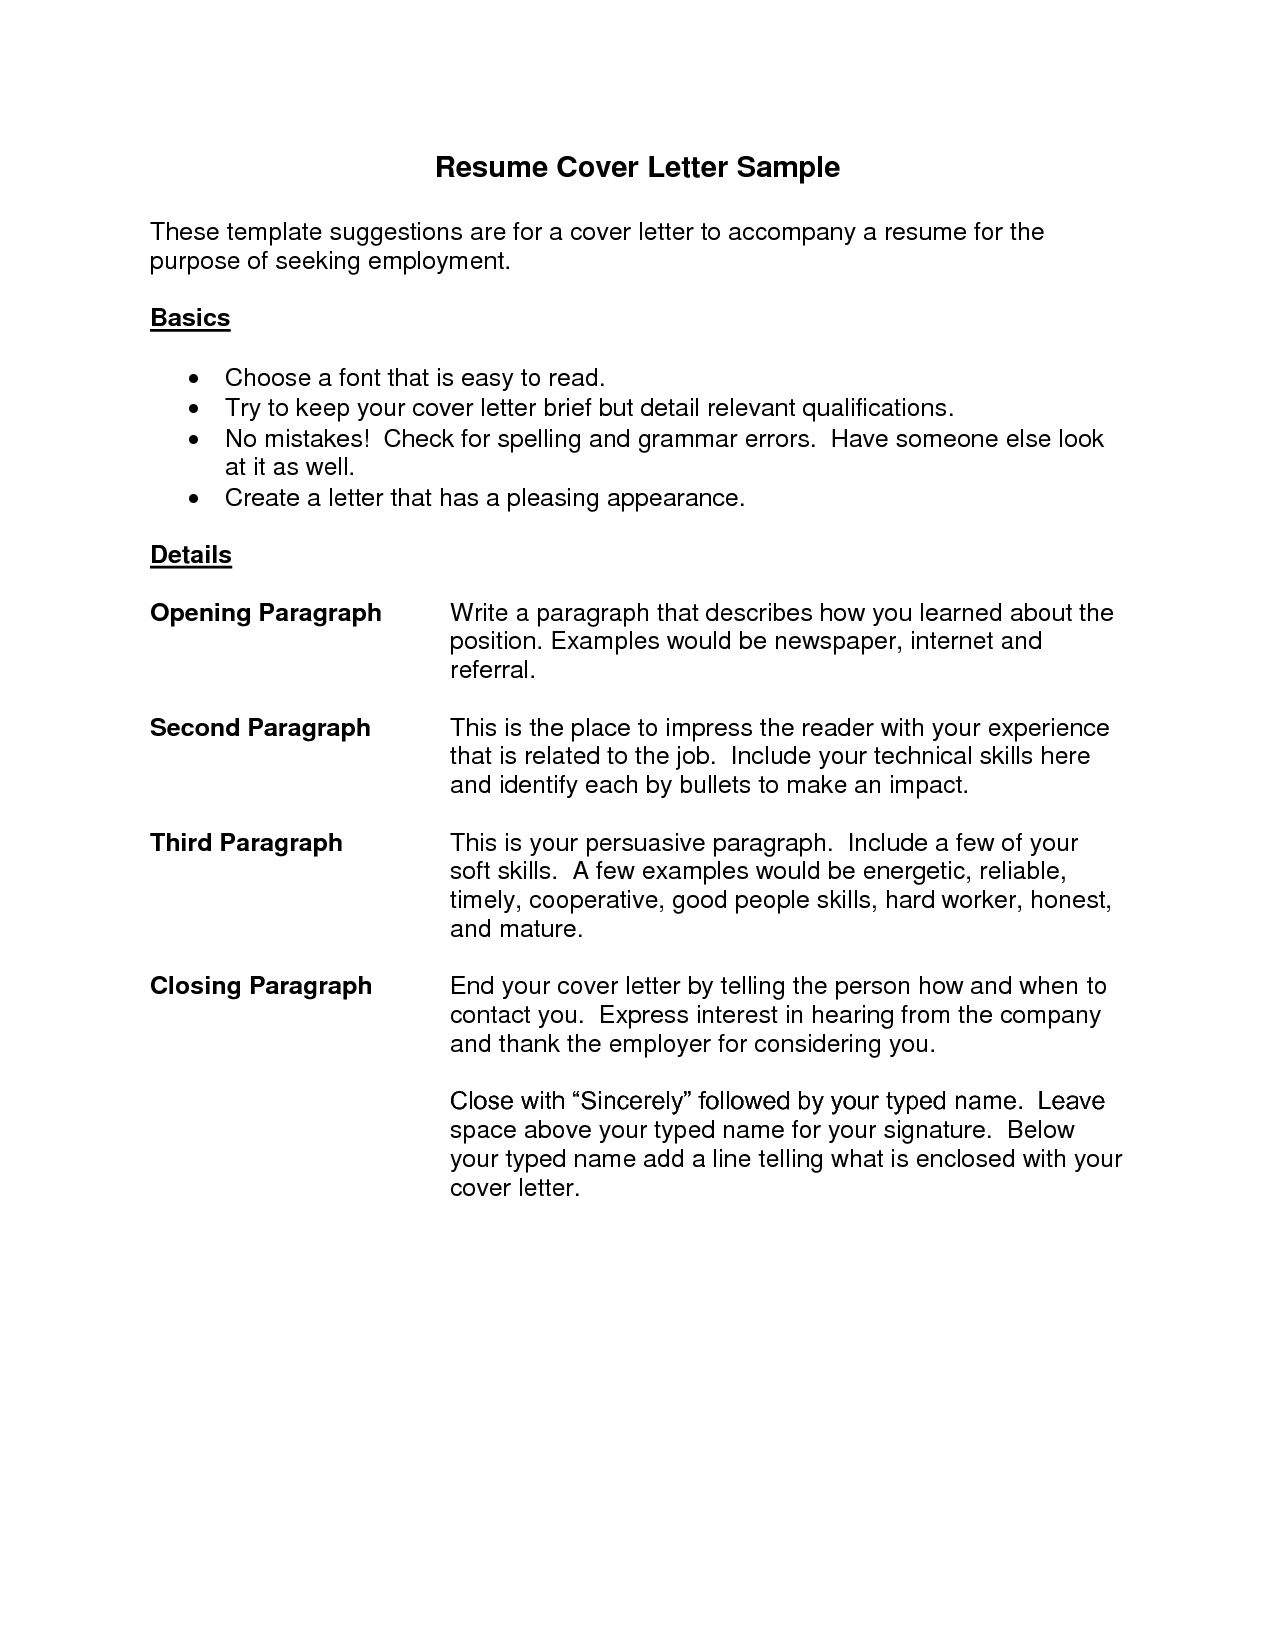 Template Of Cover Letter For Resume army intelligence analyst – Professional Cover Letter for Resume